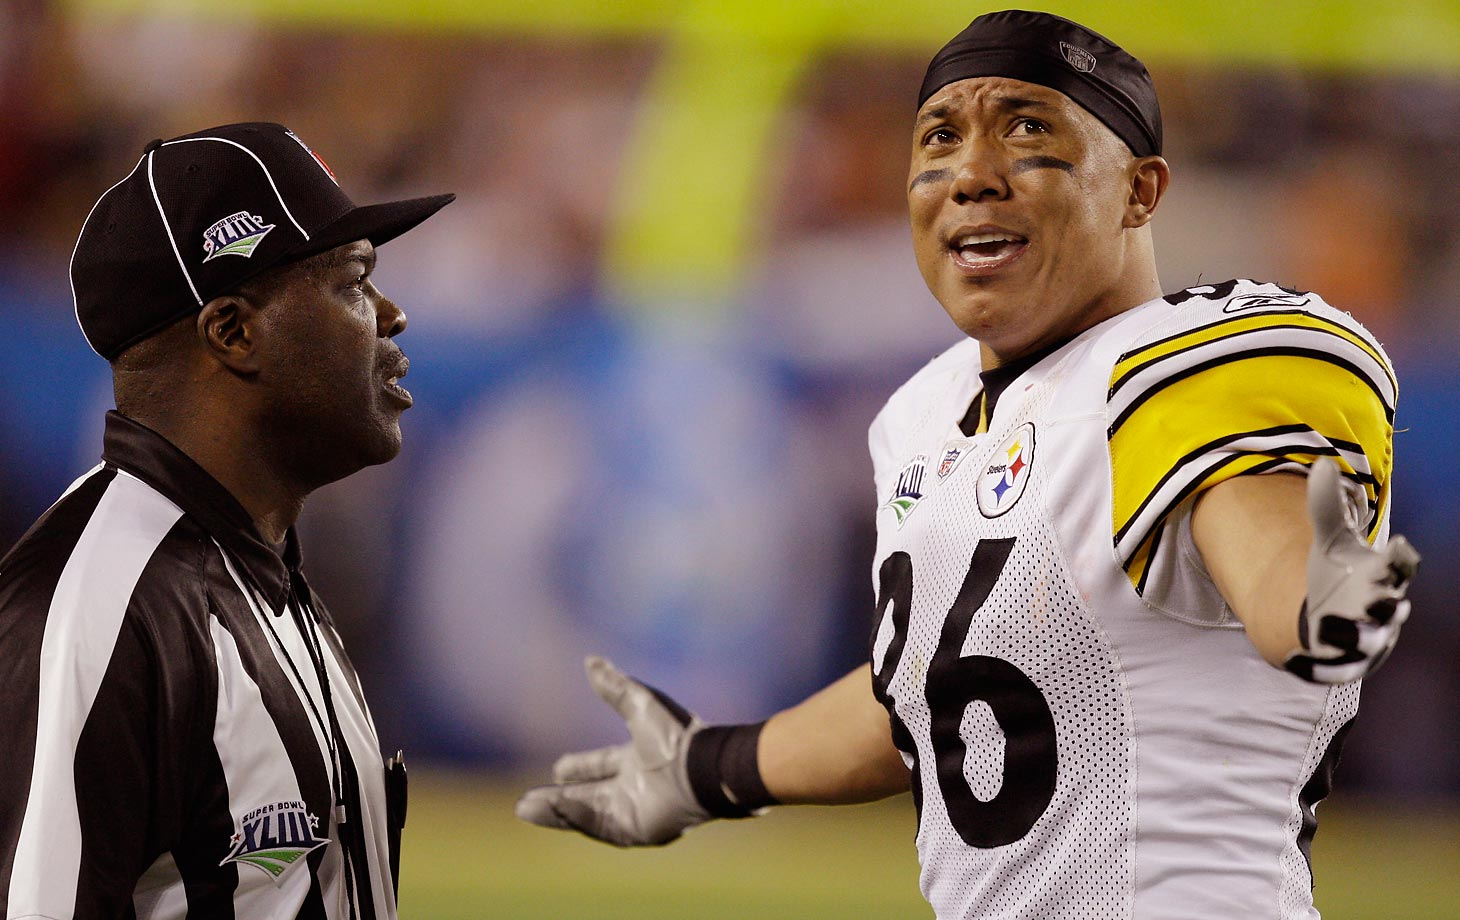 The Steelers were the only team to vote against the rule that makes it a penalty if a blocker uses his helmet, forearm or shoulder to hit a defender from behind or from the side. Hines Ward broke the jaw of Cincinnati linebacker Keith Rivers while making such a hit in 2008.